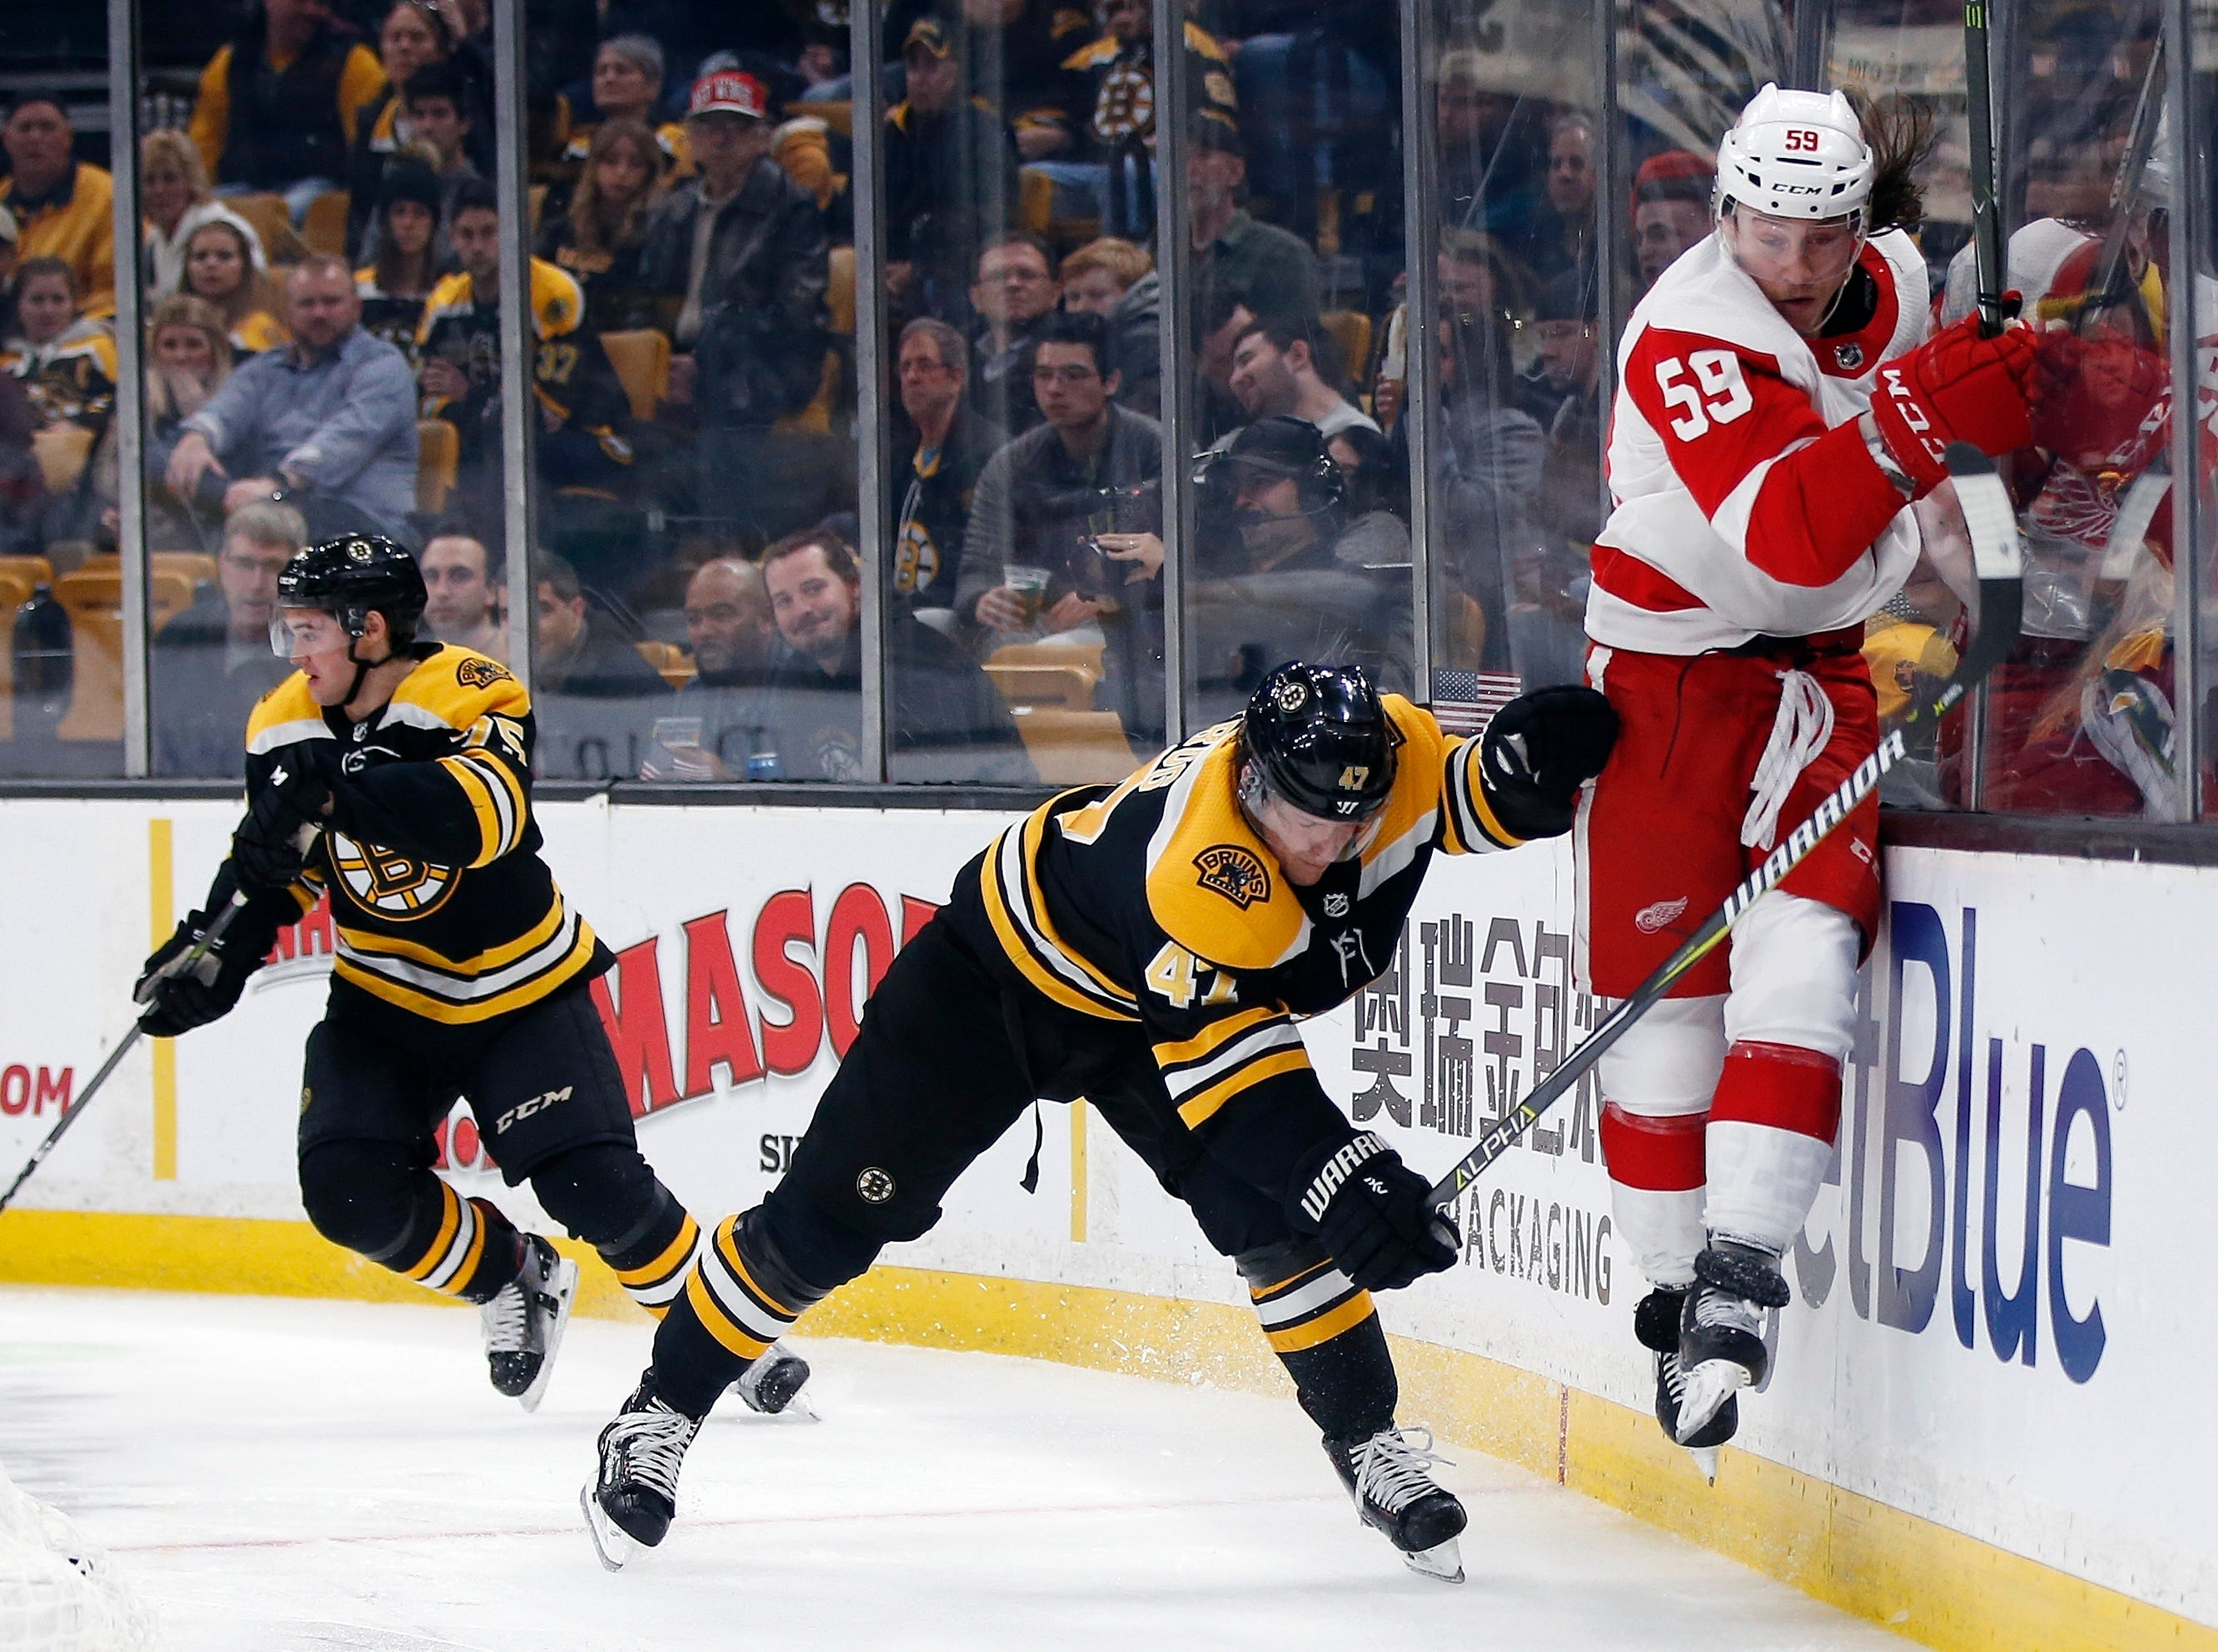 Boston Bruins' Torey Krug (47) checks Detroit Red Wings' Tyler Bertuzzi (59) during the third period.